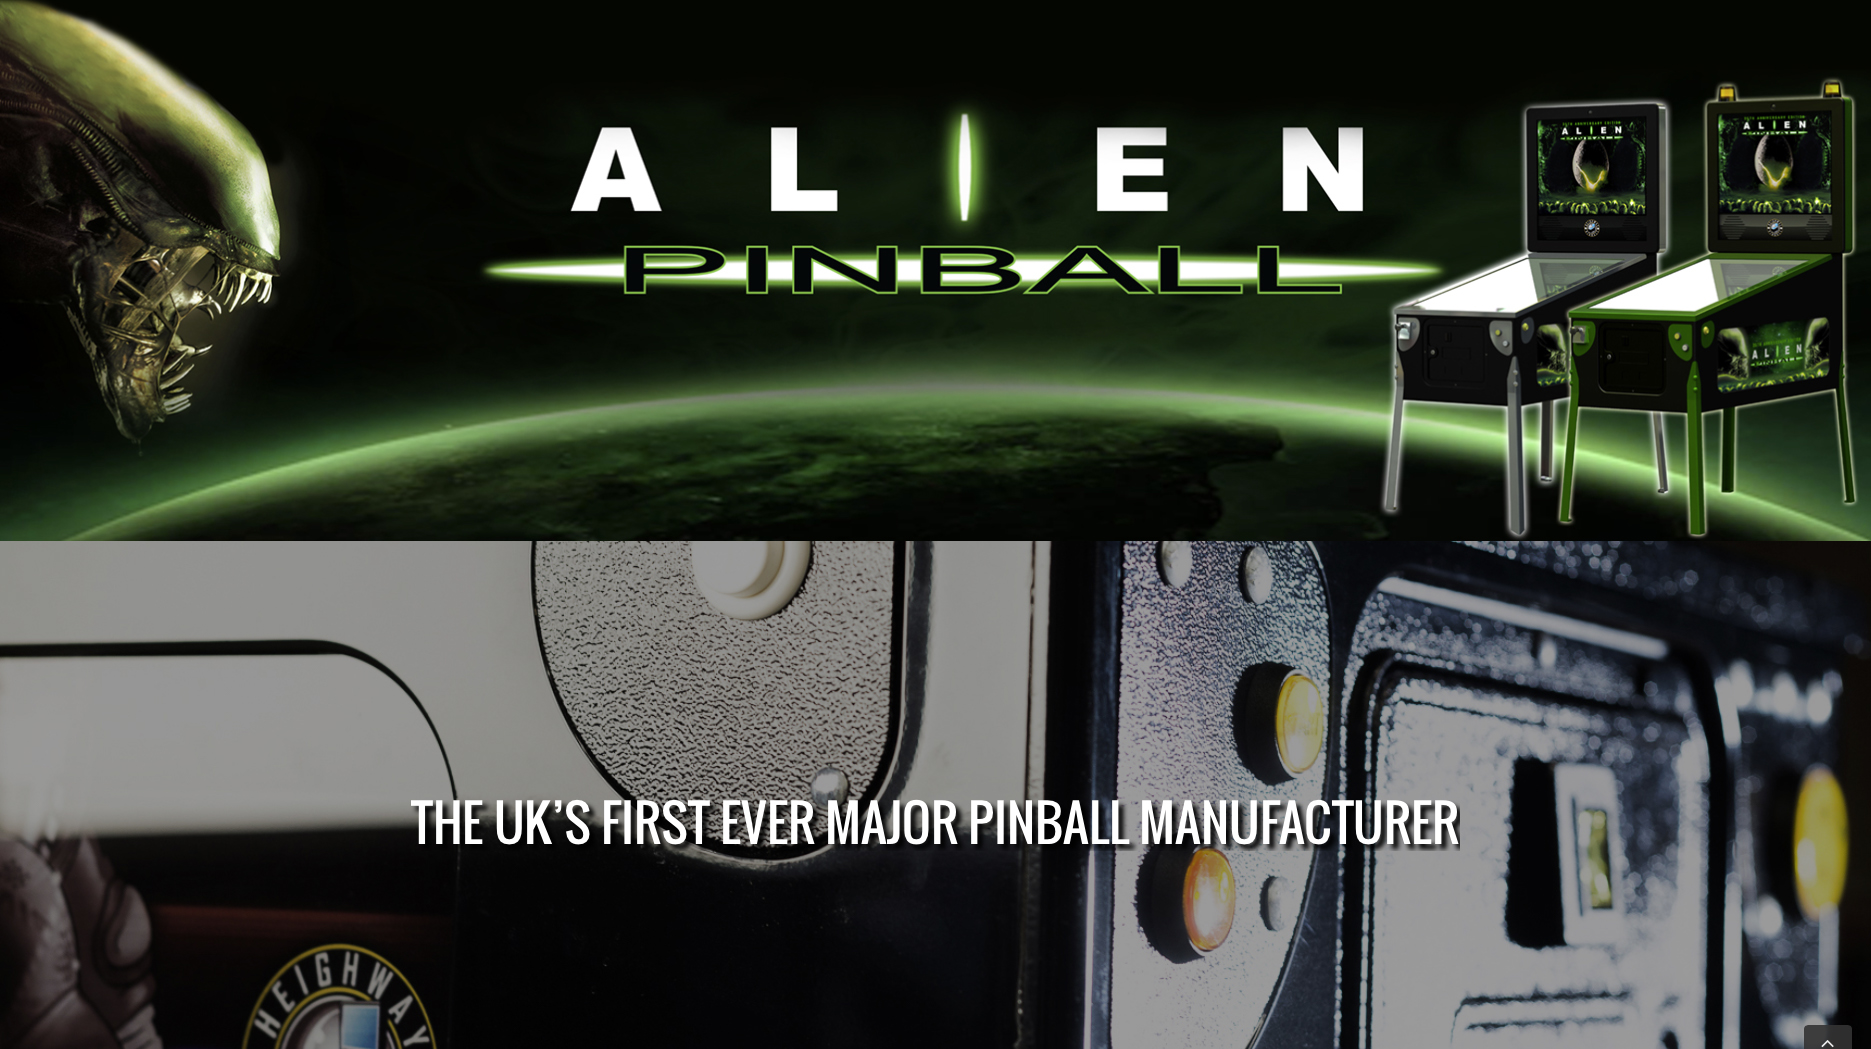 Alien Pinball web design for Heighway Pinball